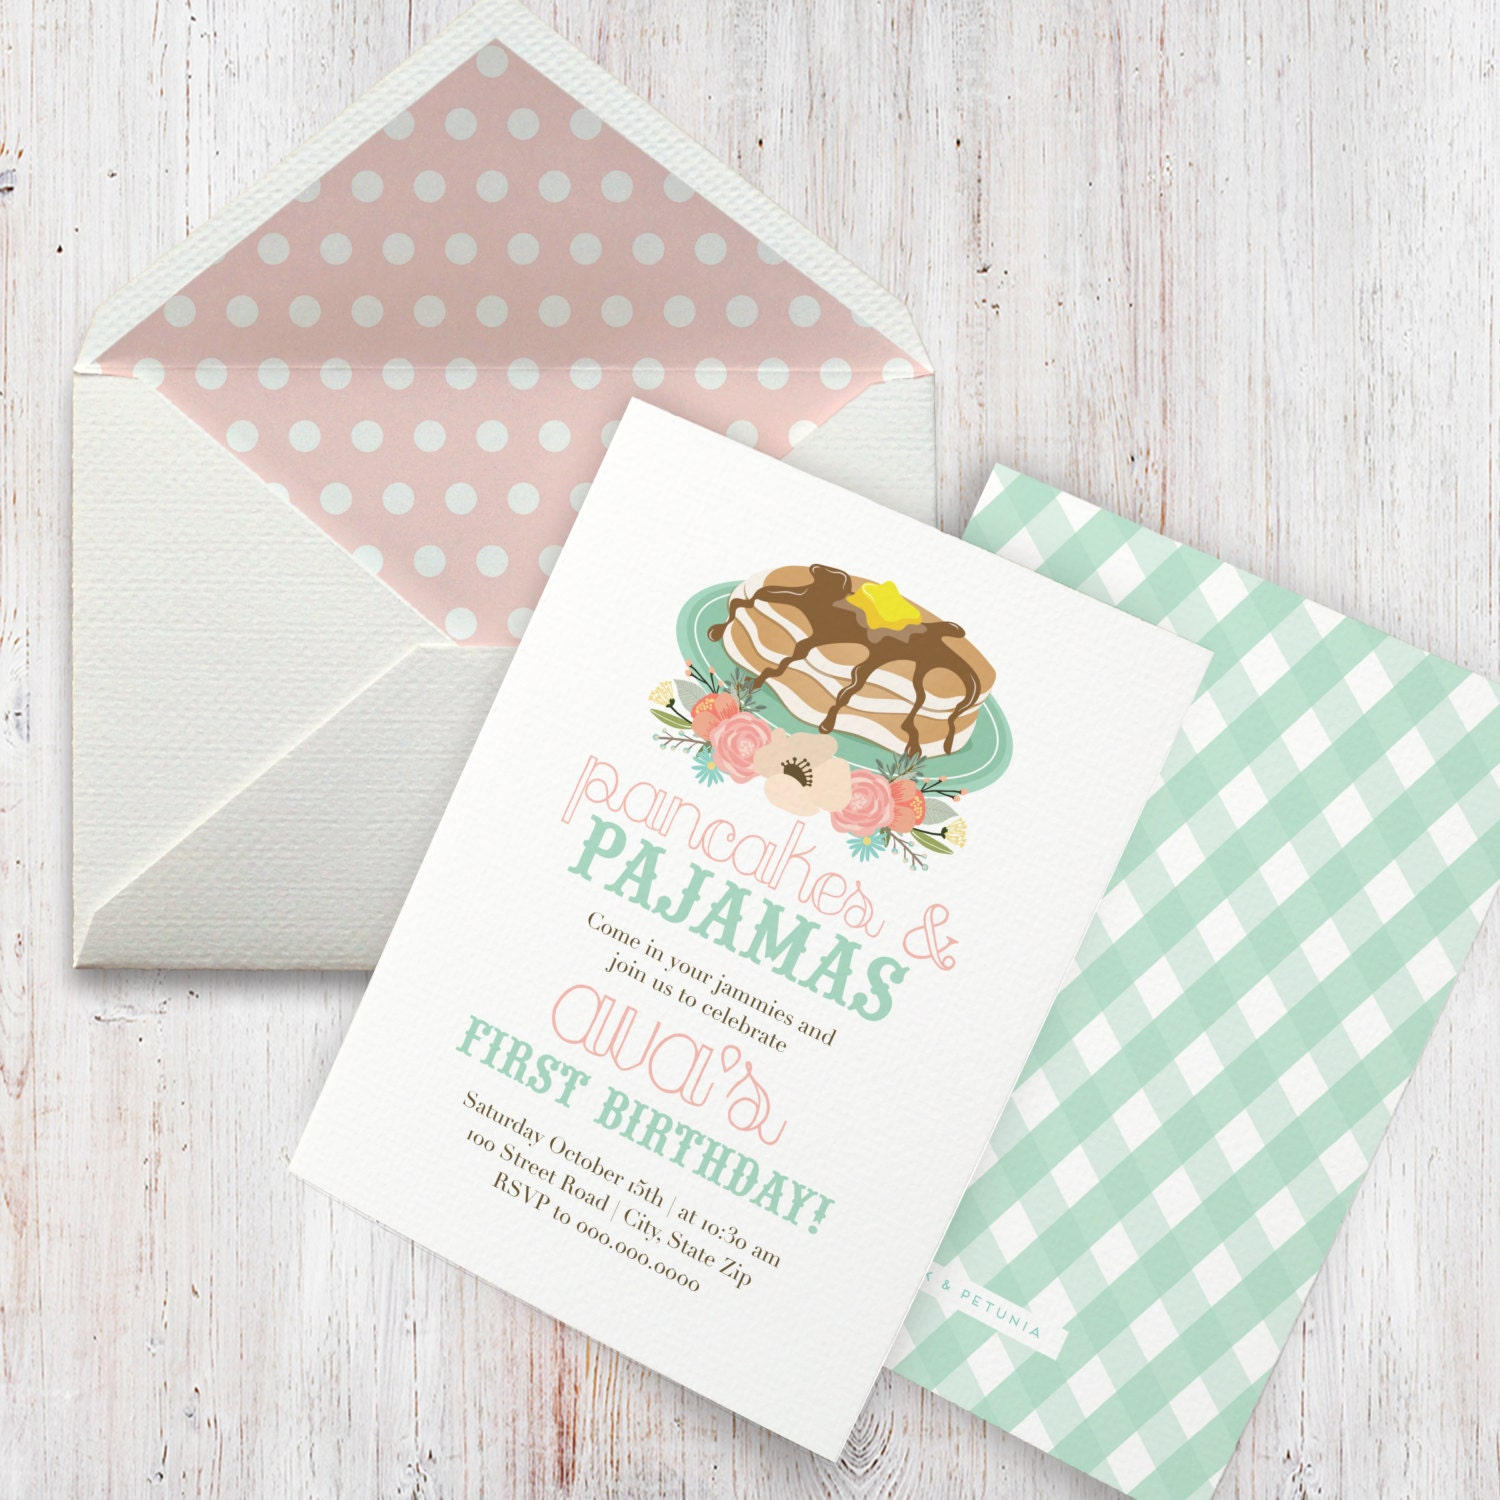 Pancakes pajamas birthday party invitation pancakes and pjs pancakes pajamas birthday party invitation pancakes and pjs invitation birthday invitation envelope liner stopboris Image collections